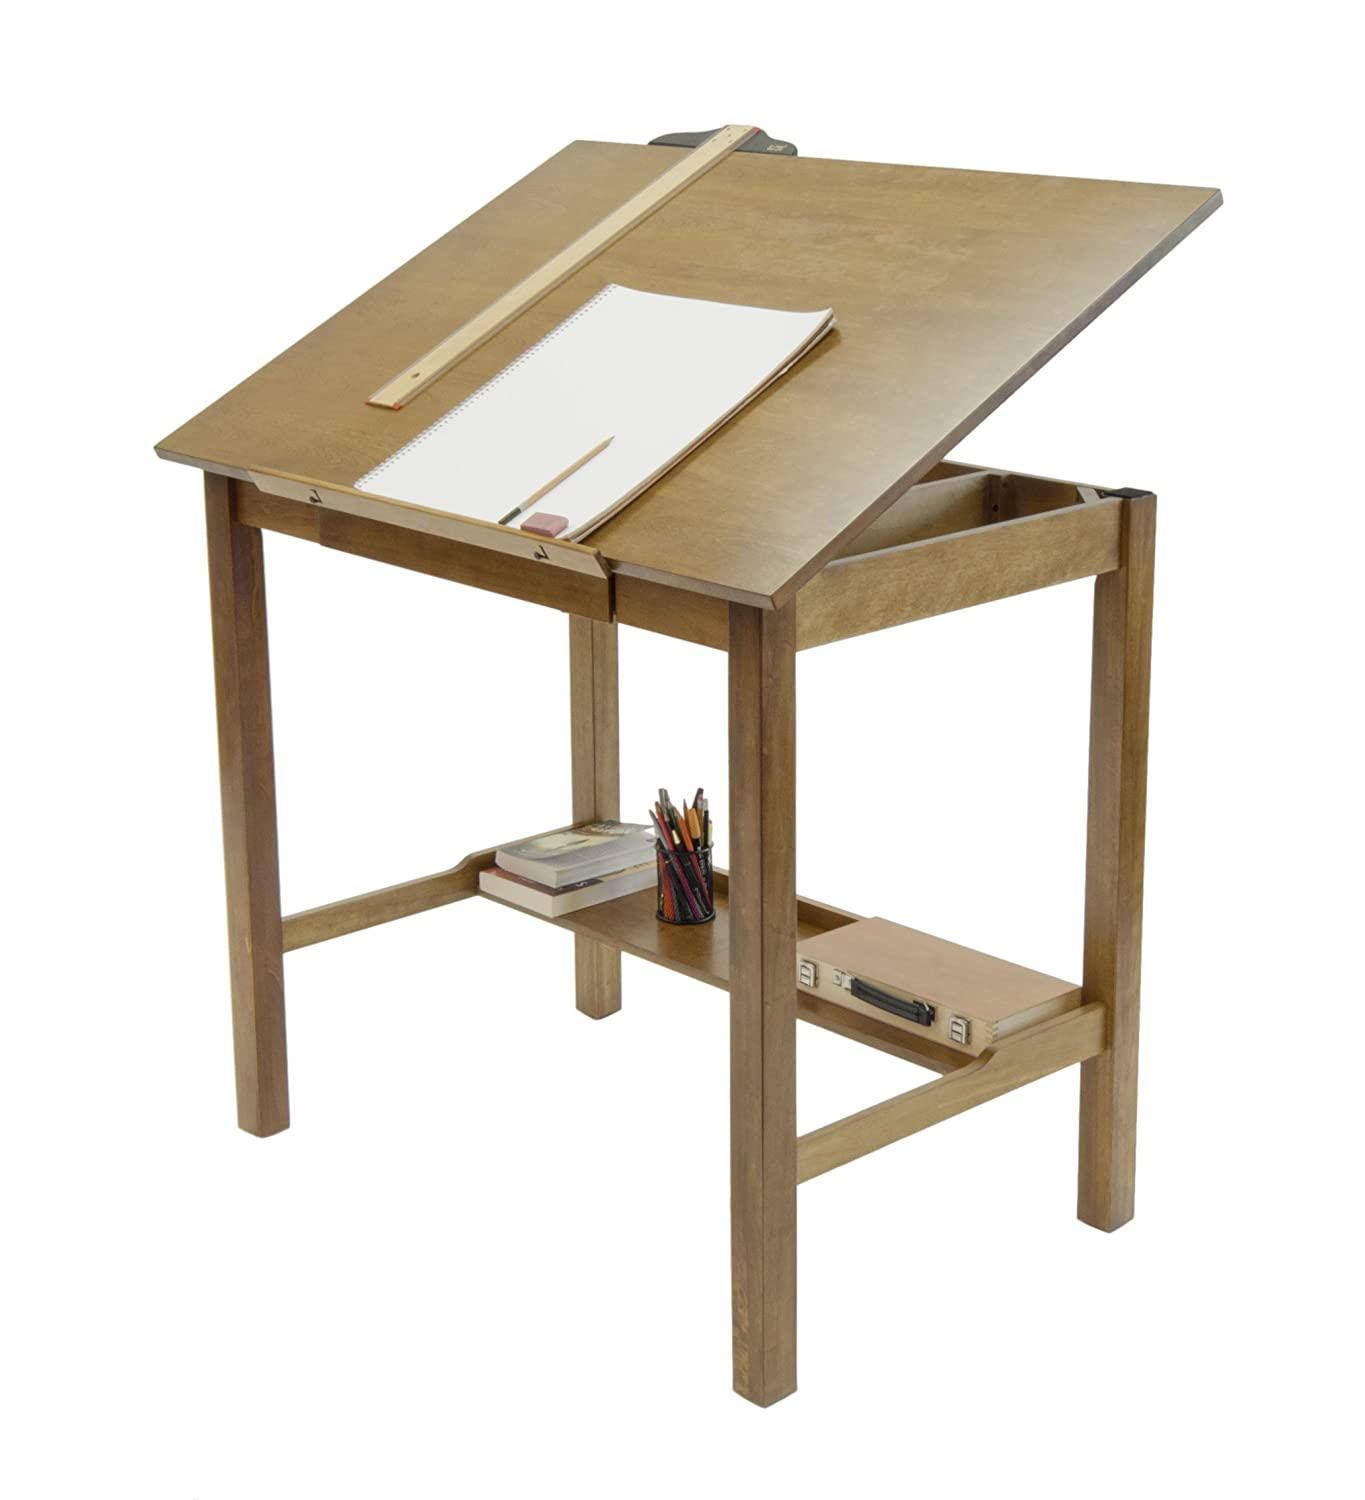 tables table rga wooden galleria roots erie drafting com product